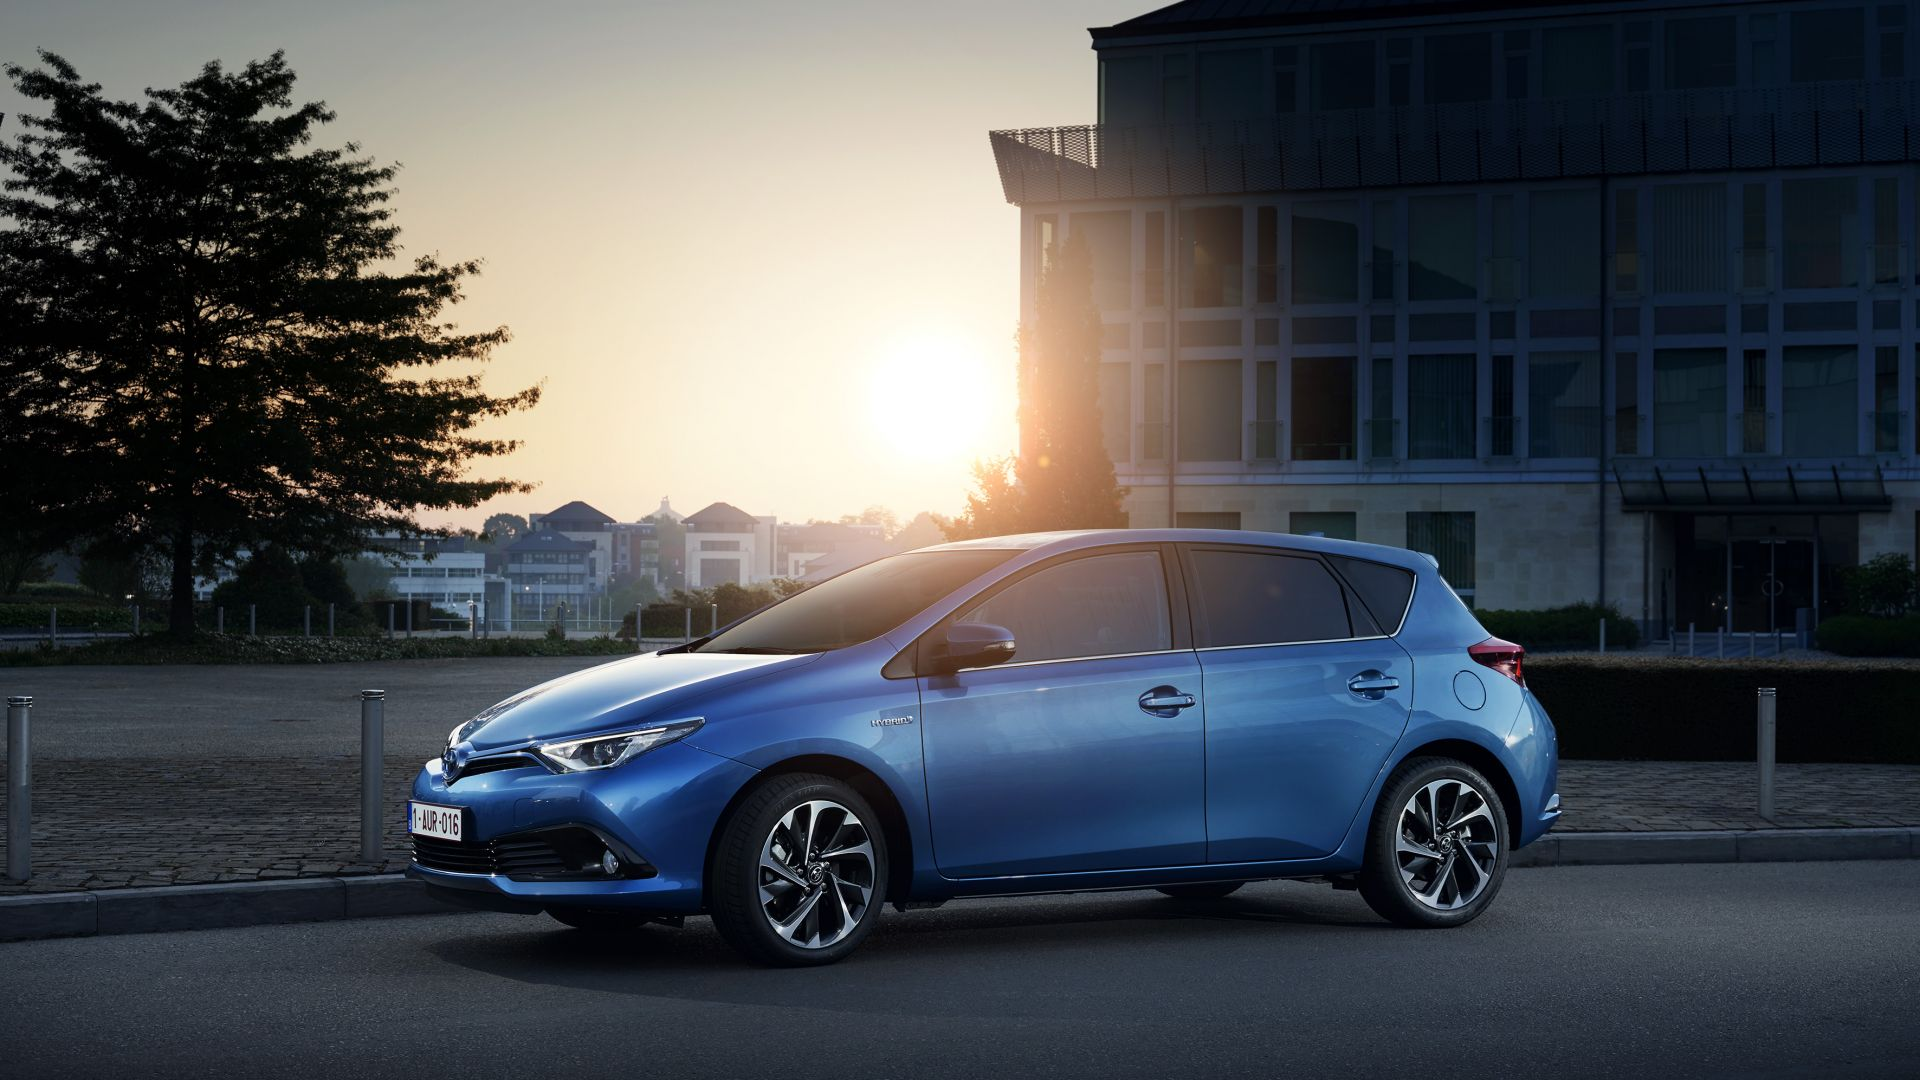 toyota auris wallpaper cars bikes brand toyota auris hatchback hybrid blue. Black Bedroom Furniture Sets. Home Design Ideas